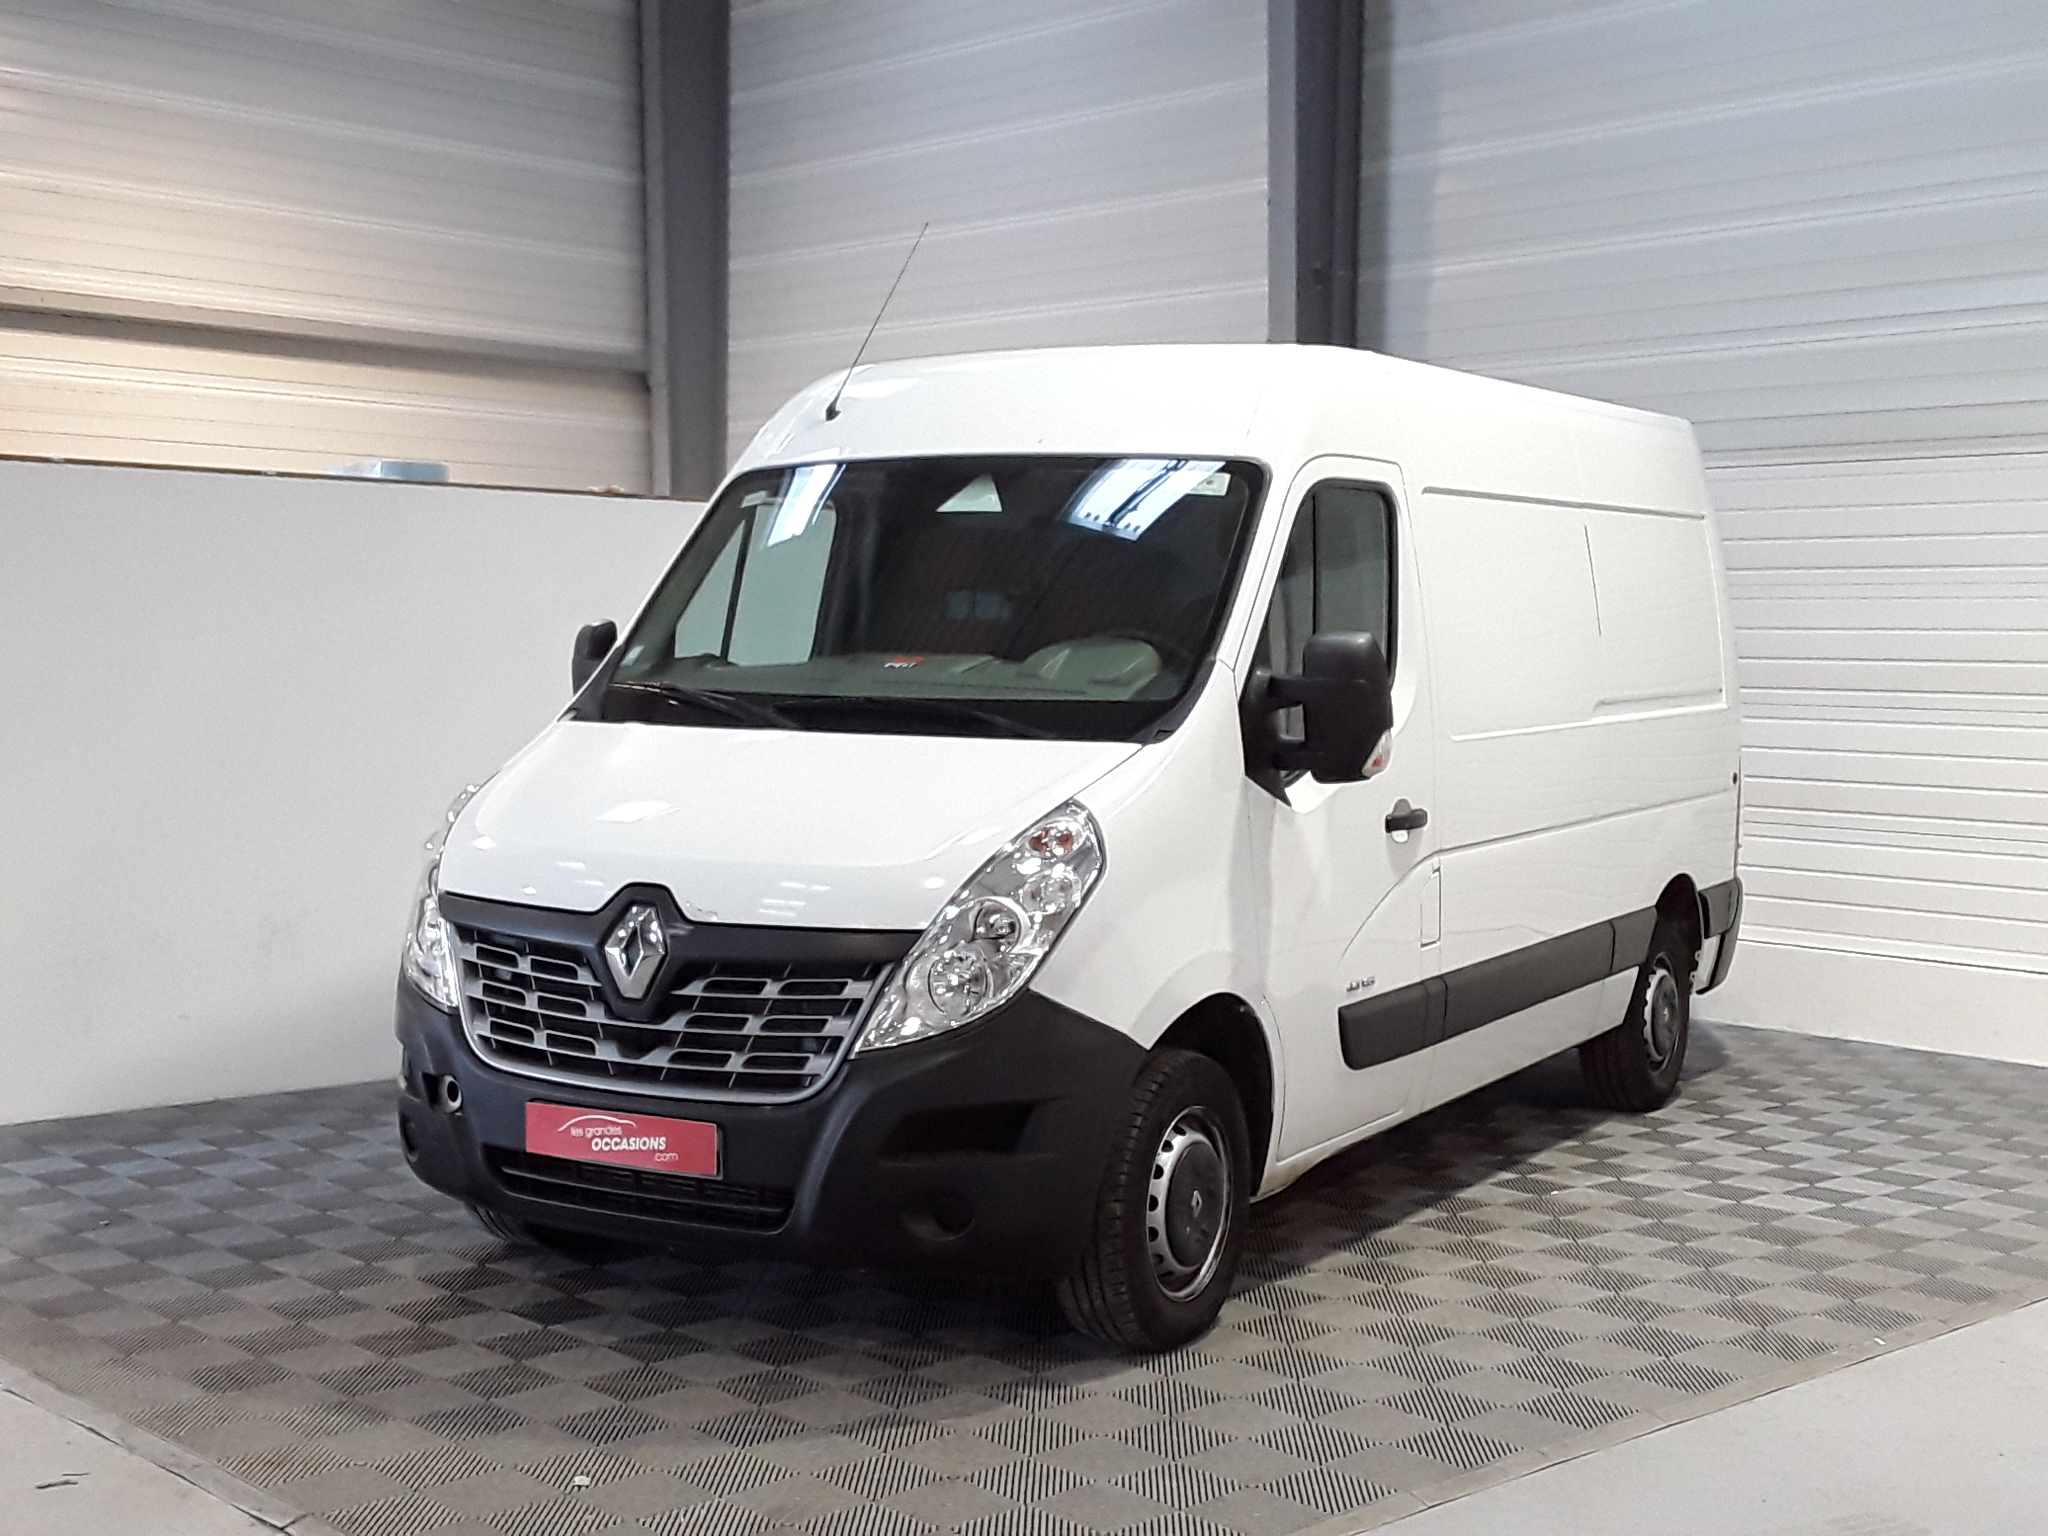 RENAULT MASTER FOURGON FG GCF TRAC F3300 L2H2 DCI 125 d'occasion